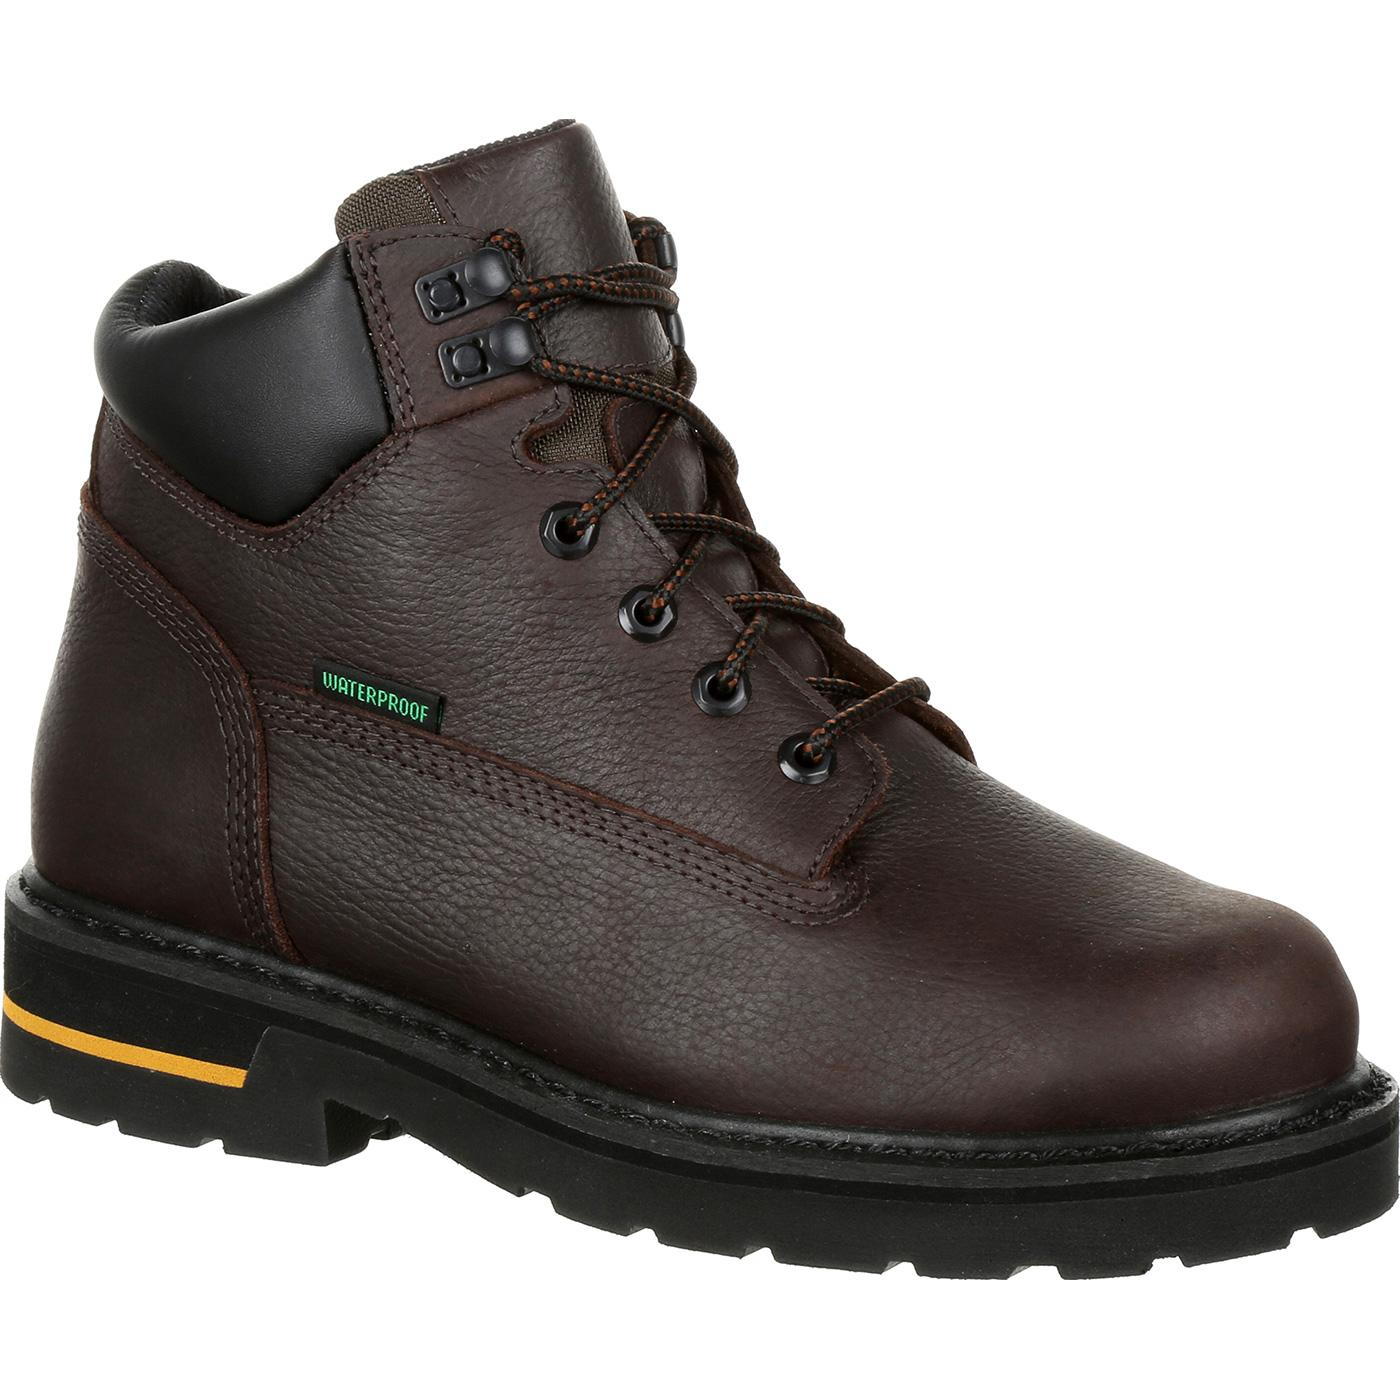 Georgia Boot Waterproof Work Boot